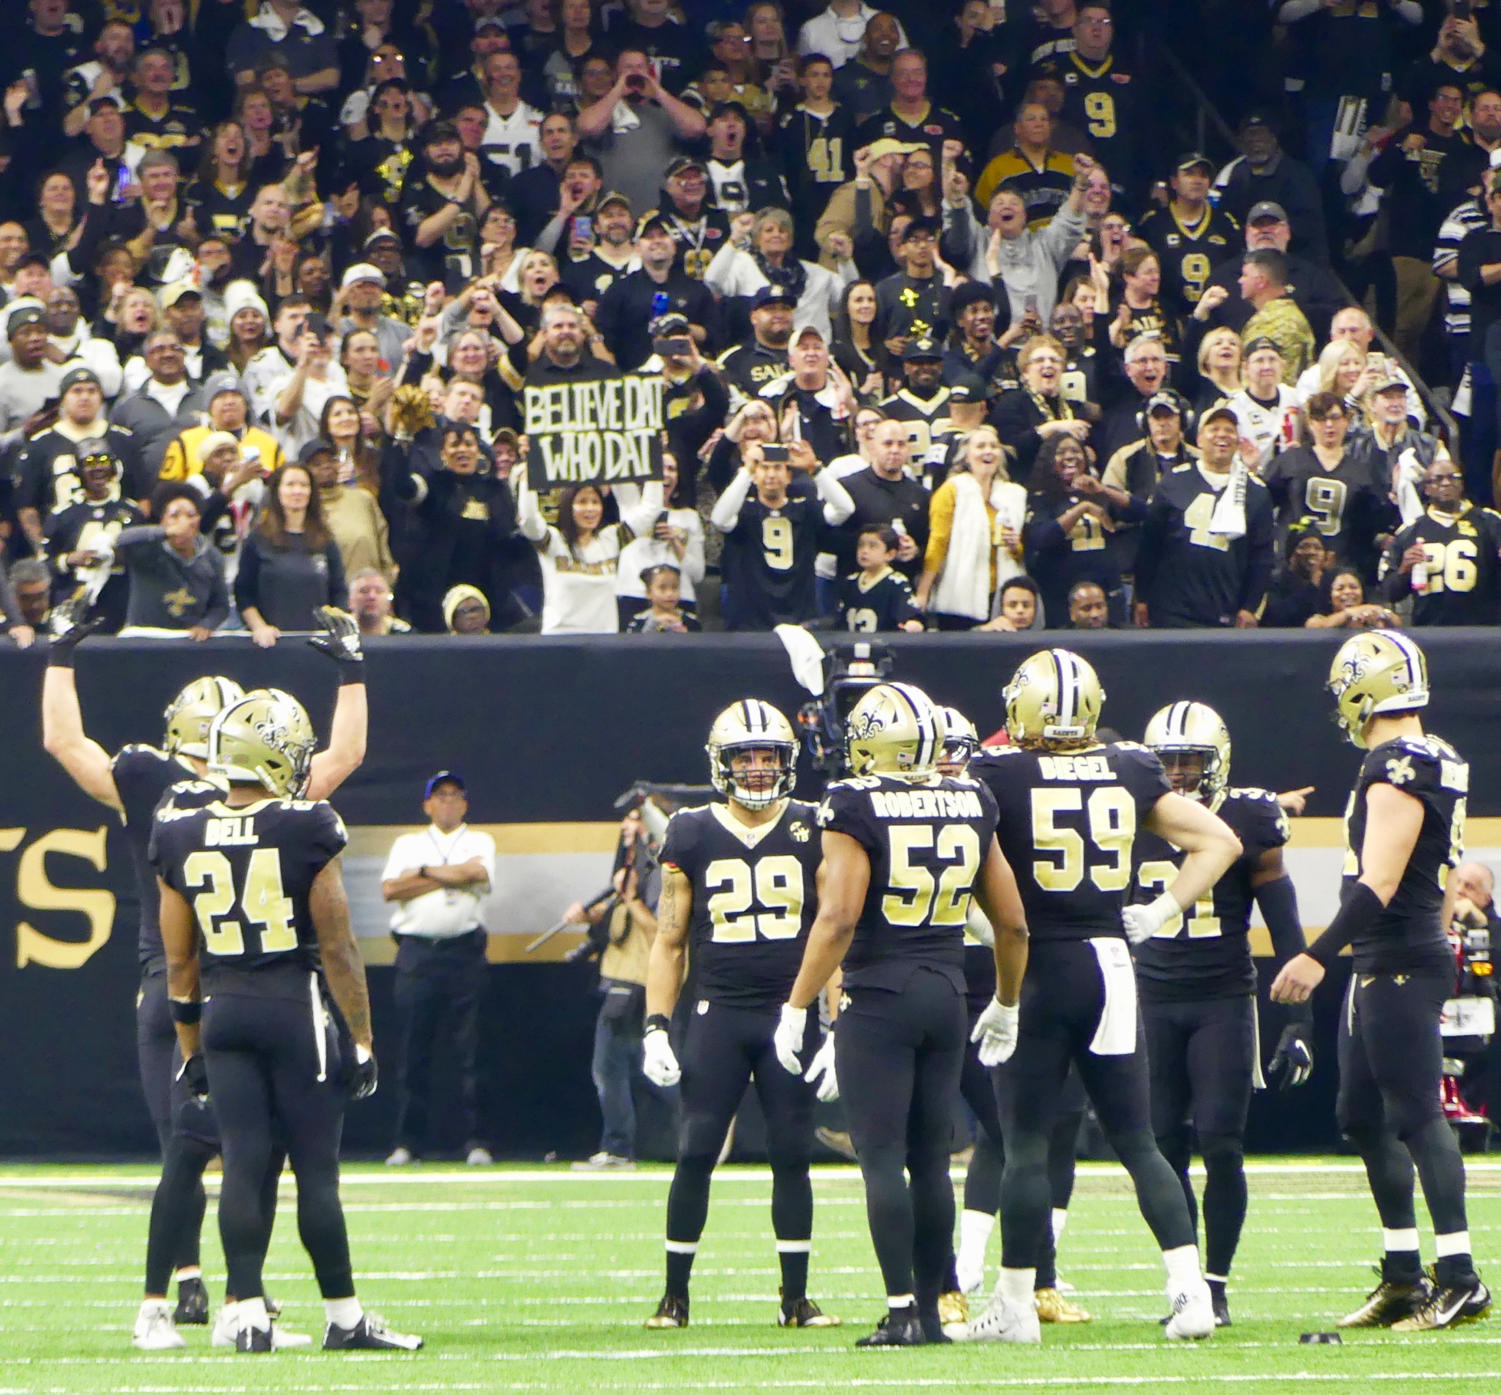 Fans+cheer+on+the+Saints+defense+in+the+Superdome.+Photo+credit%3A+Olivia+Ledet